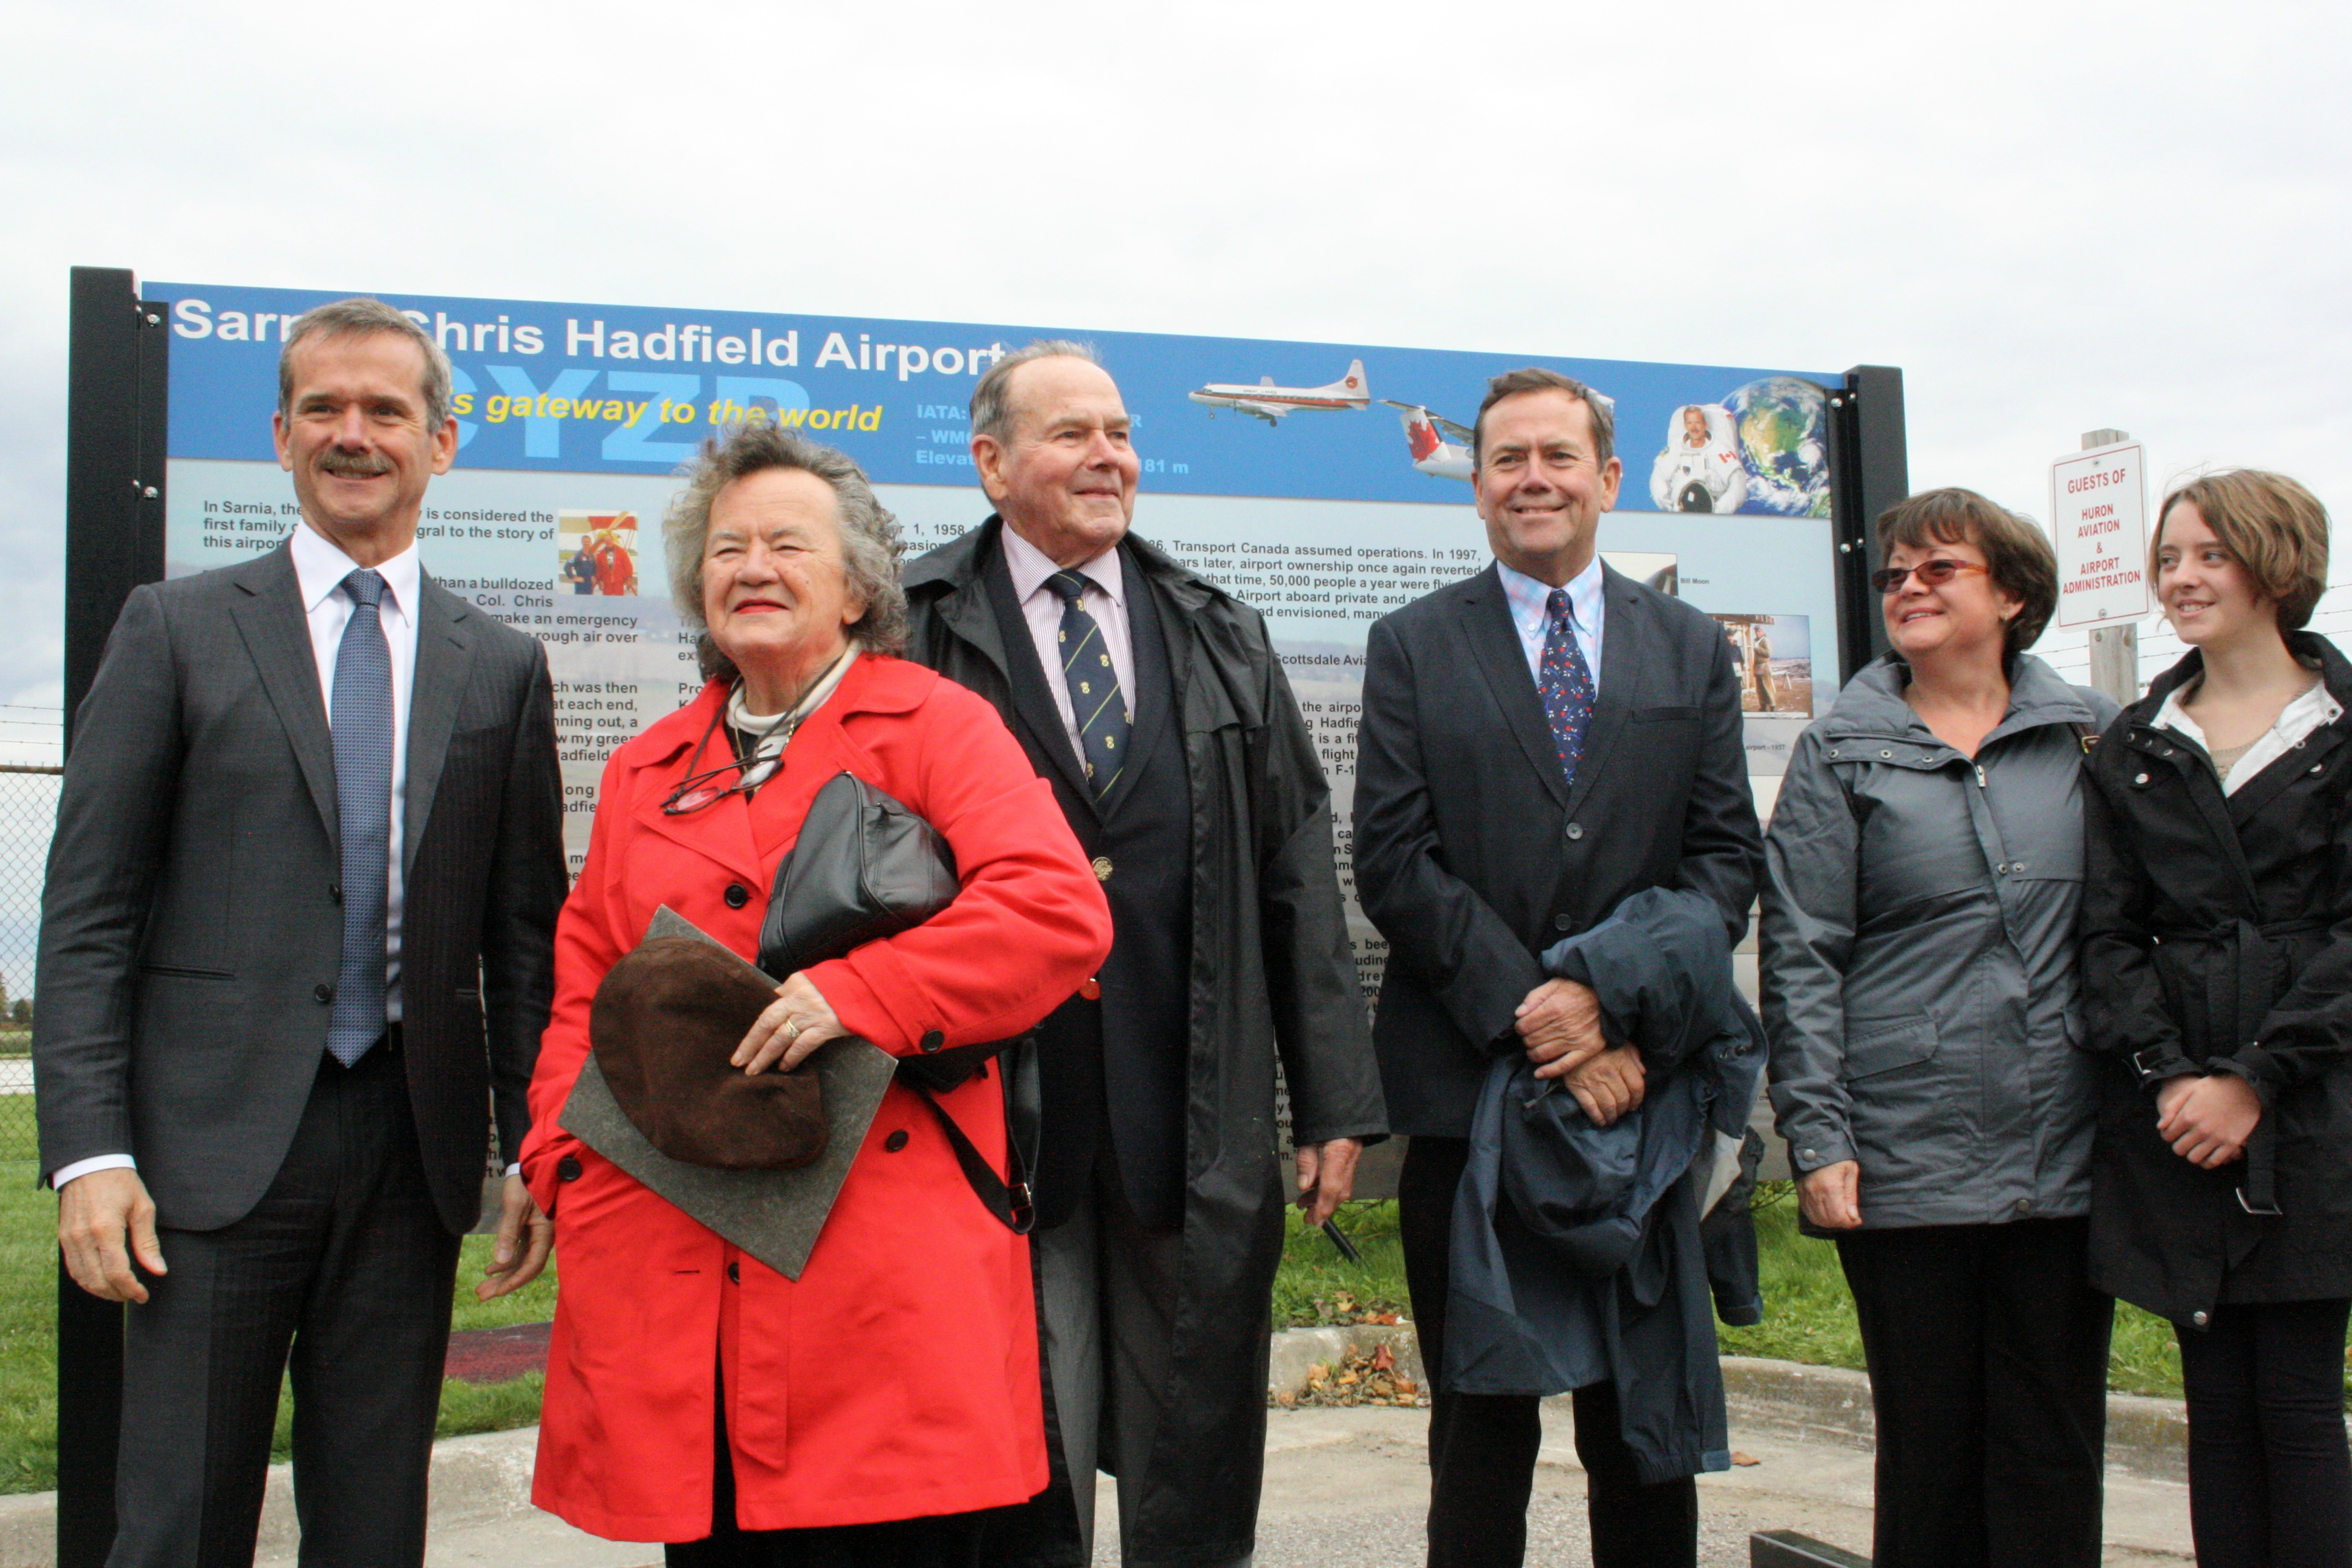 Chris Hadfield and members of his family including his parents attend the unveiling of interpretive signs at Sarnia's airport Oct. 5, 2014 (BlackburnNews.com photo by Dave Dentinger)